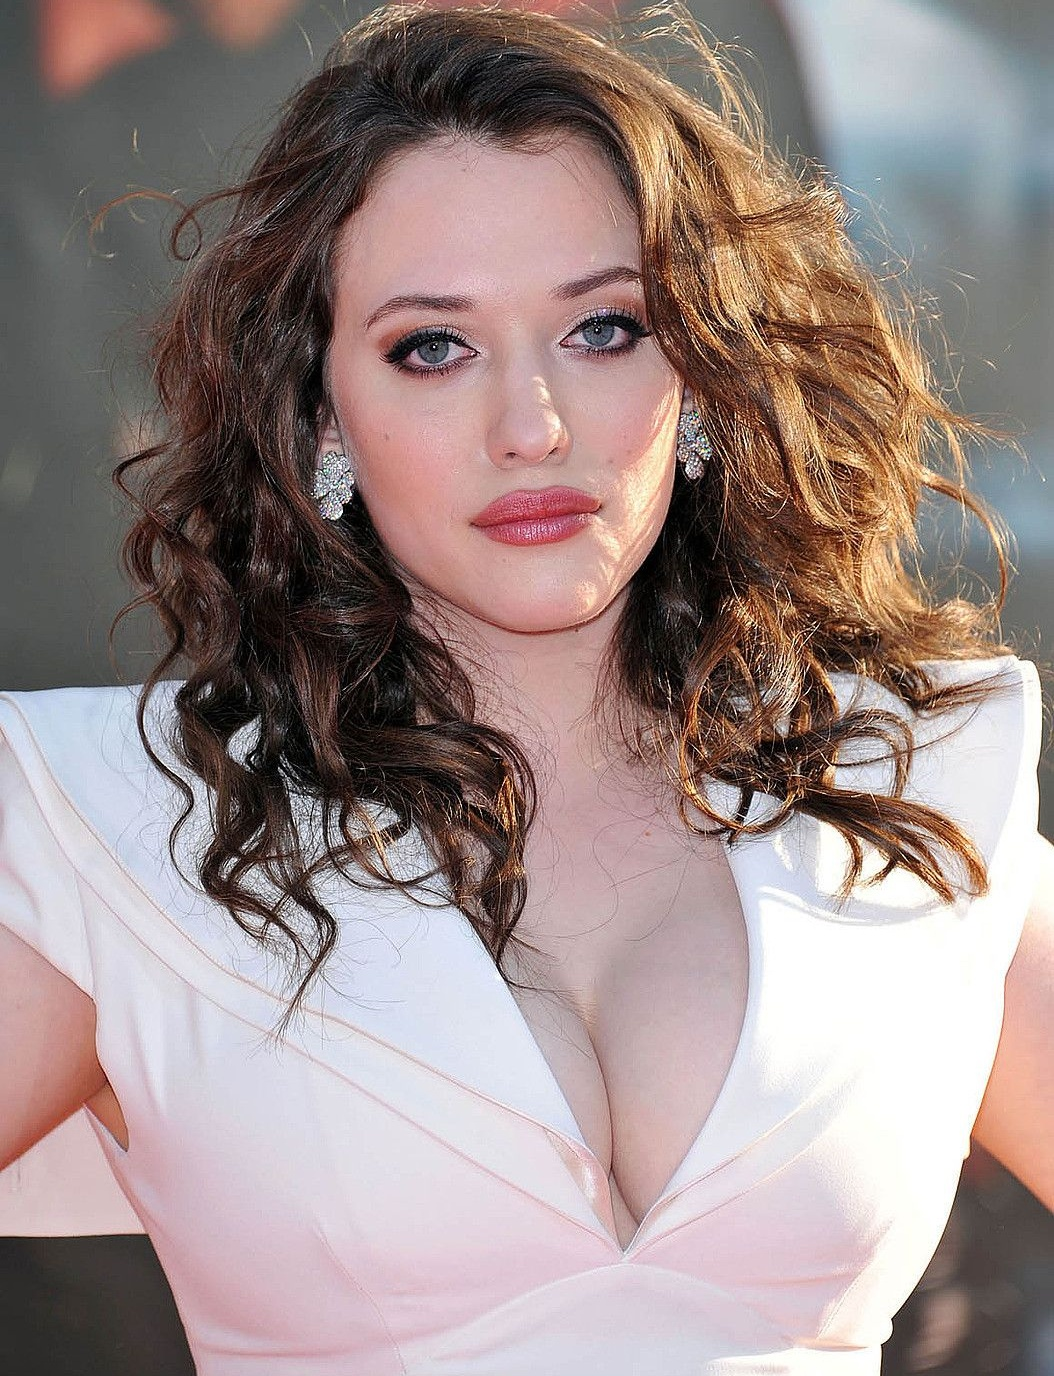 Naked pictures of kat dennings